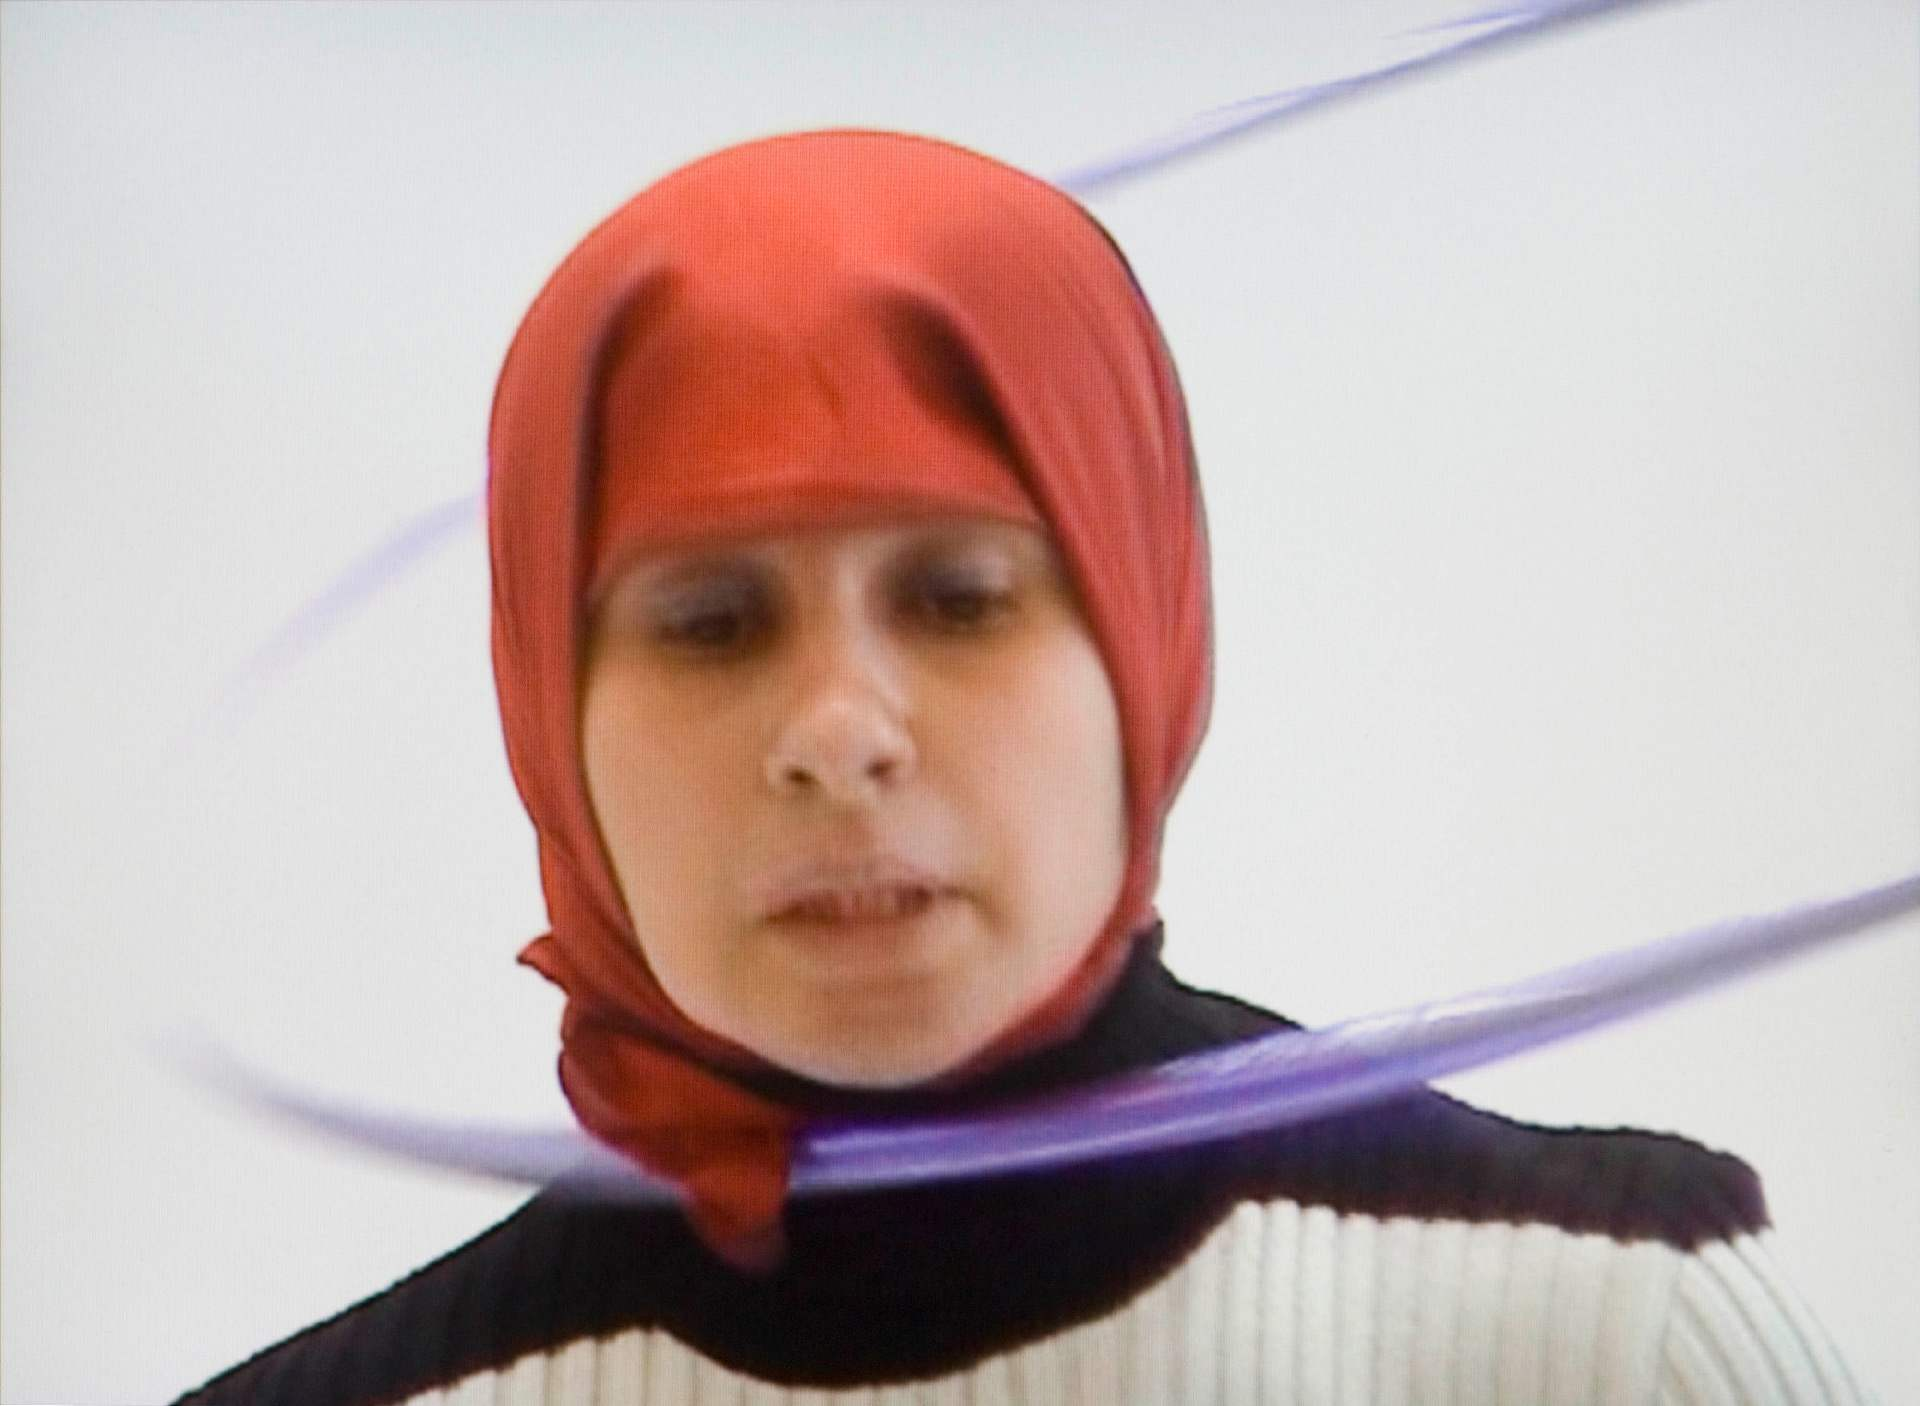 Nezaket Ekici, Hullabelly, 2002, video performance, 6/10, duration: 2 min 4 s. Purchase, Guy de Repentigny Fund.